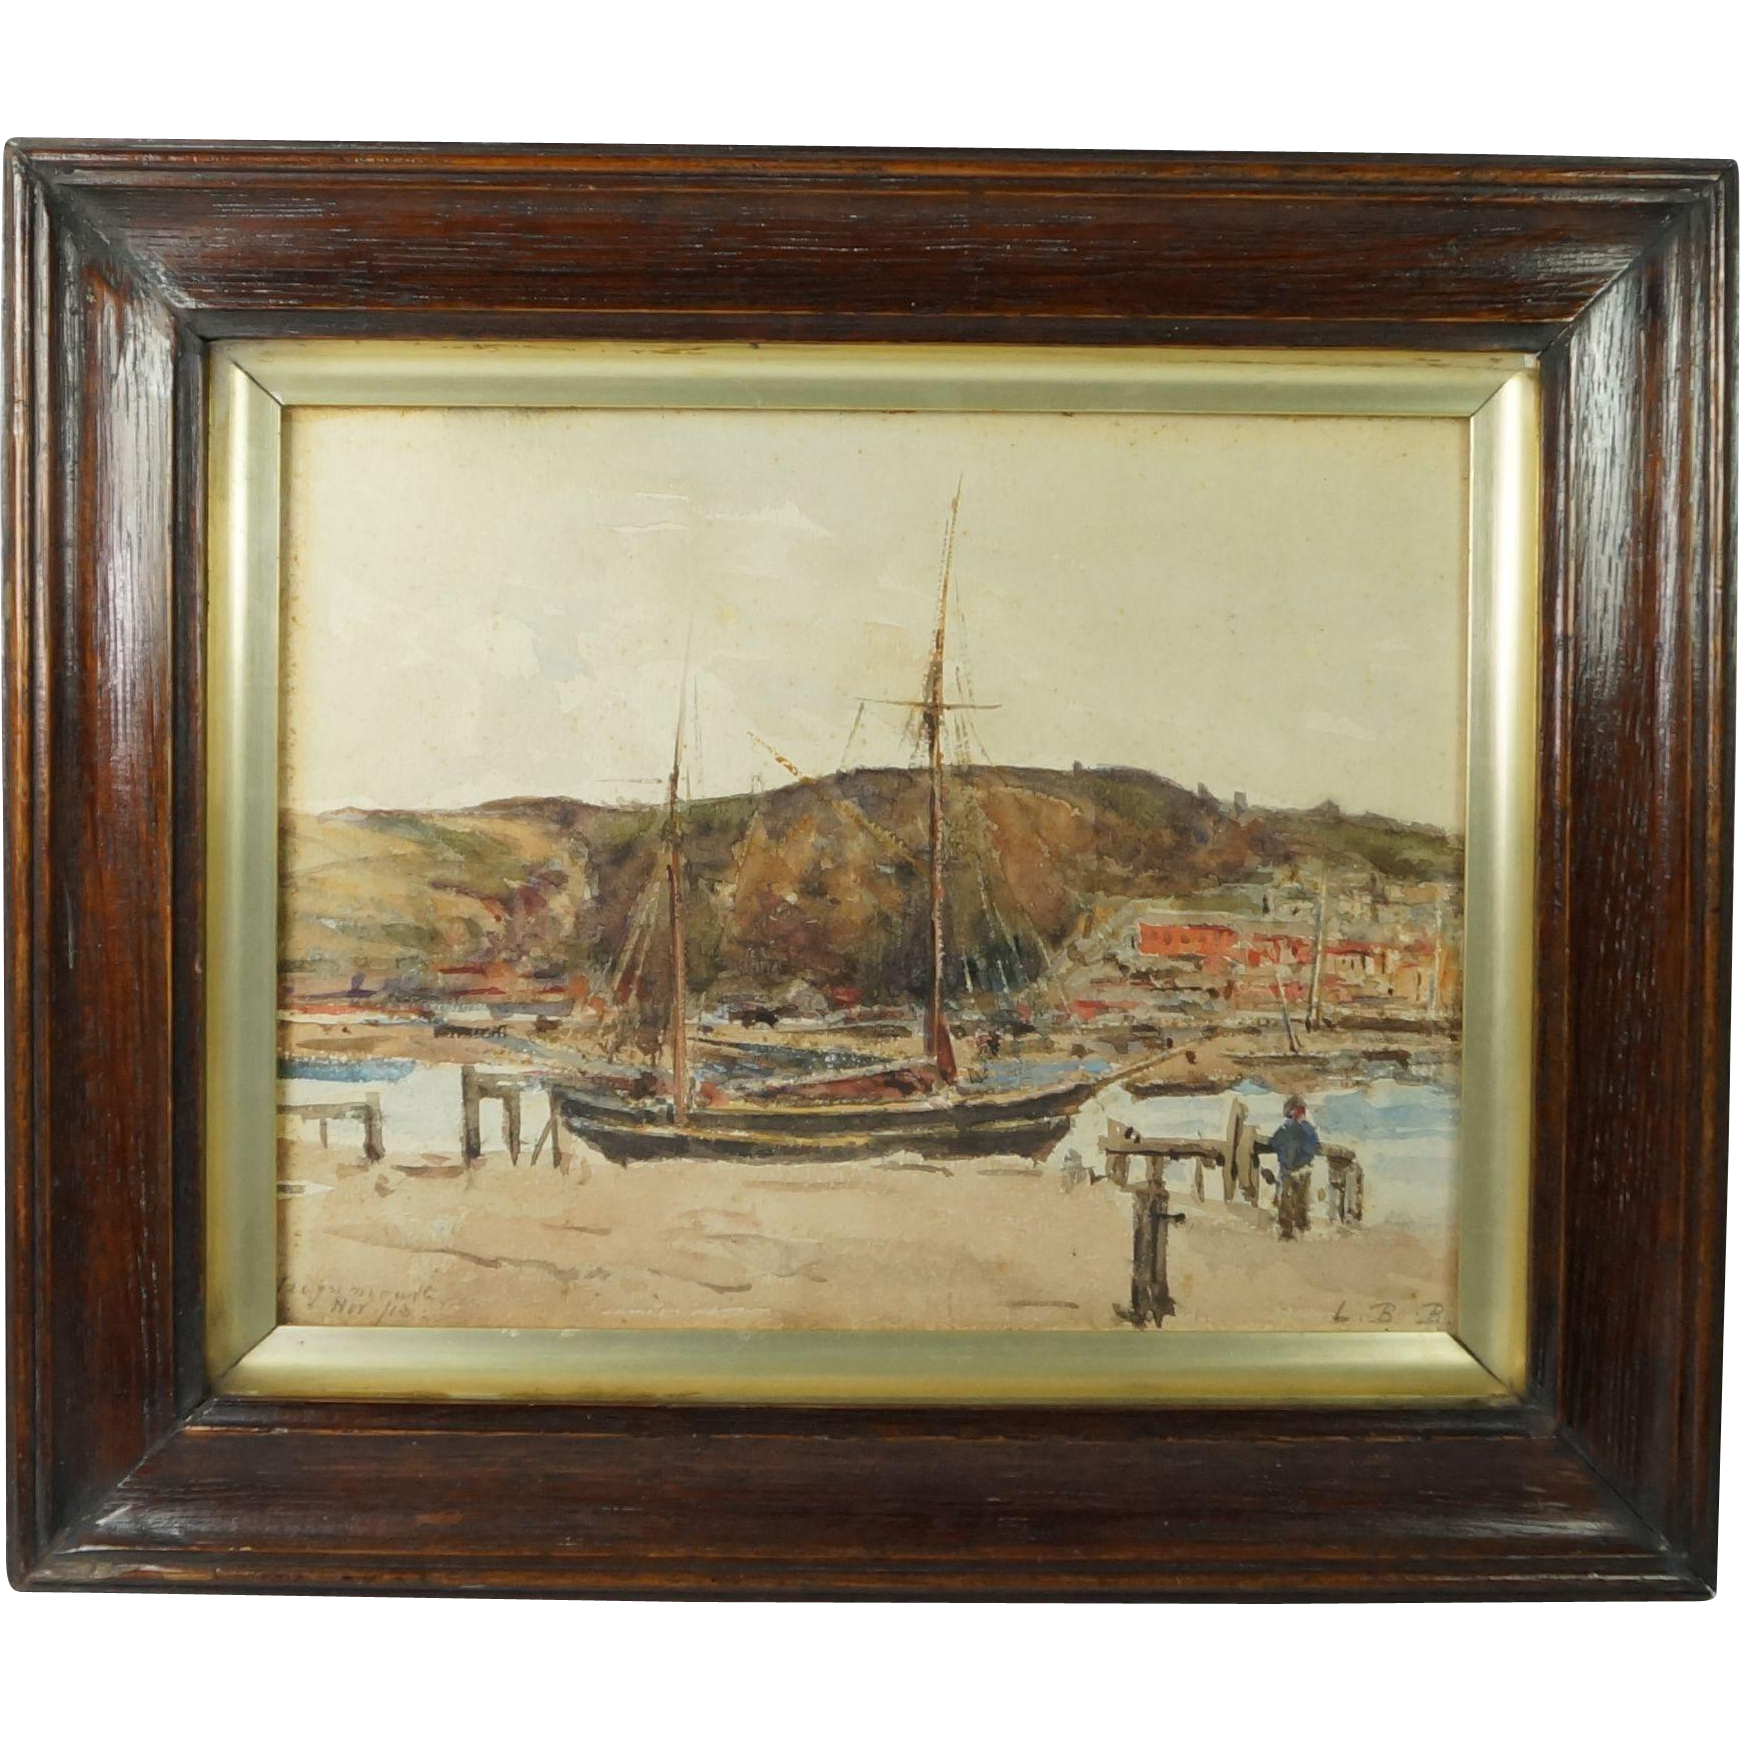 Antique English Watercolor Painting Coastal Landscape Monogram And Dated L.B.B Nov 1913 Teignmouth